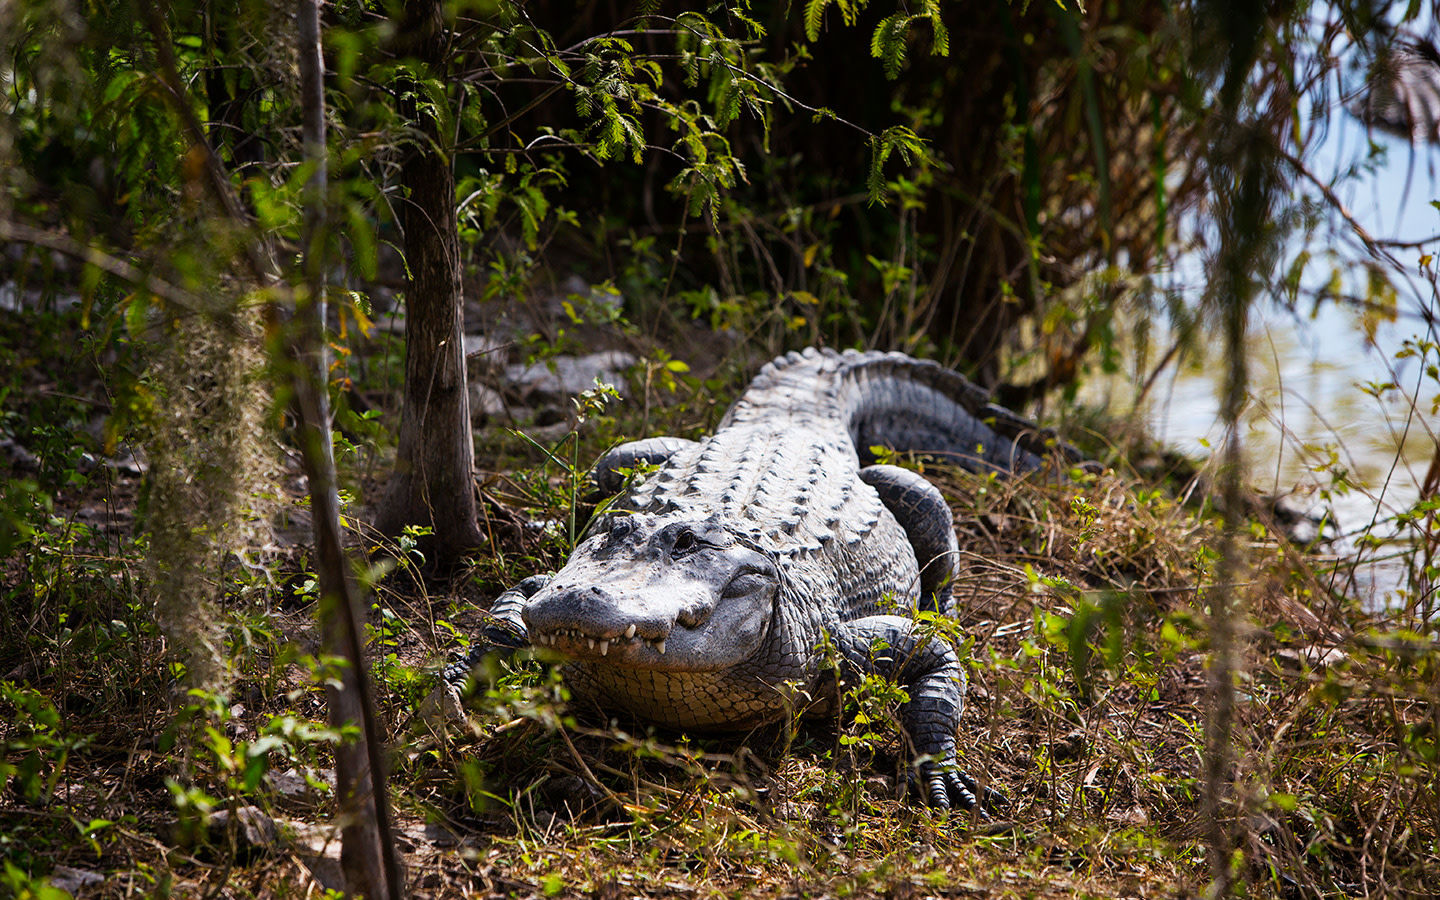 Everglades alligator